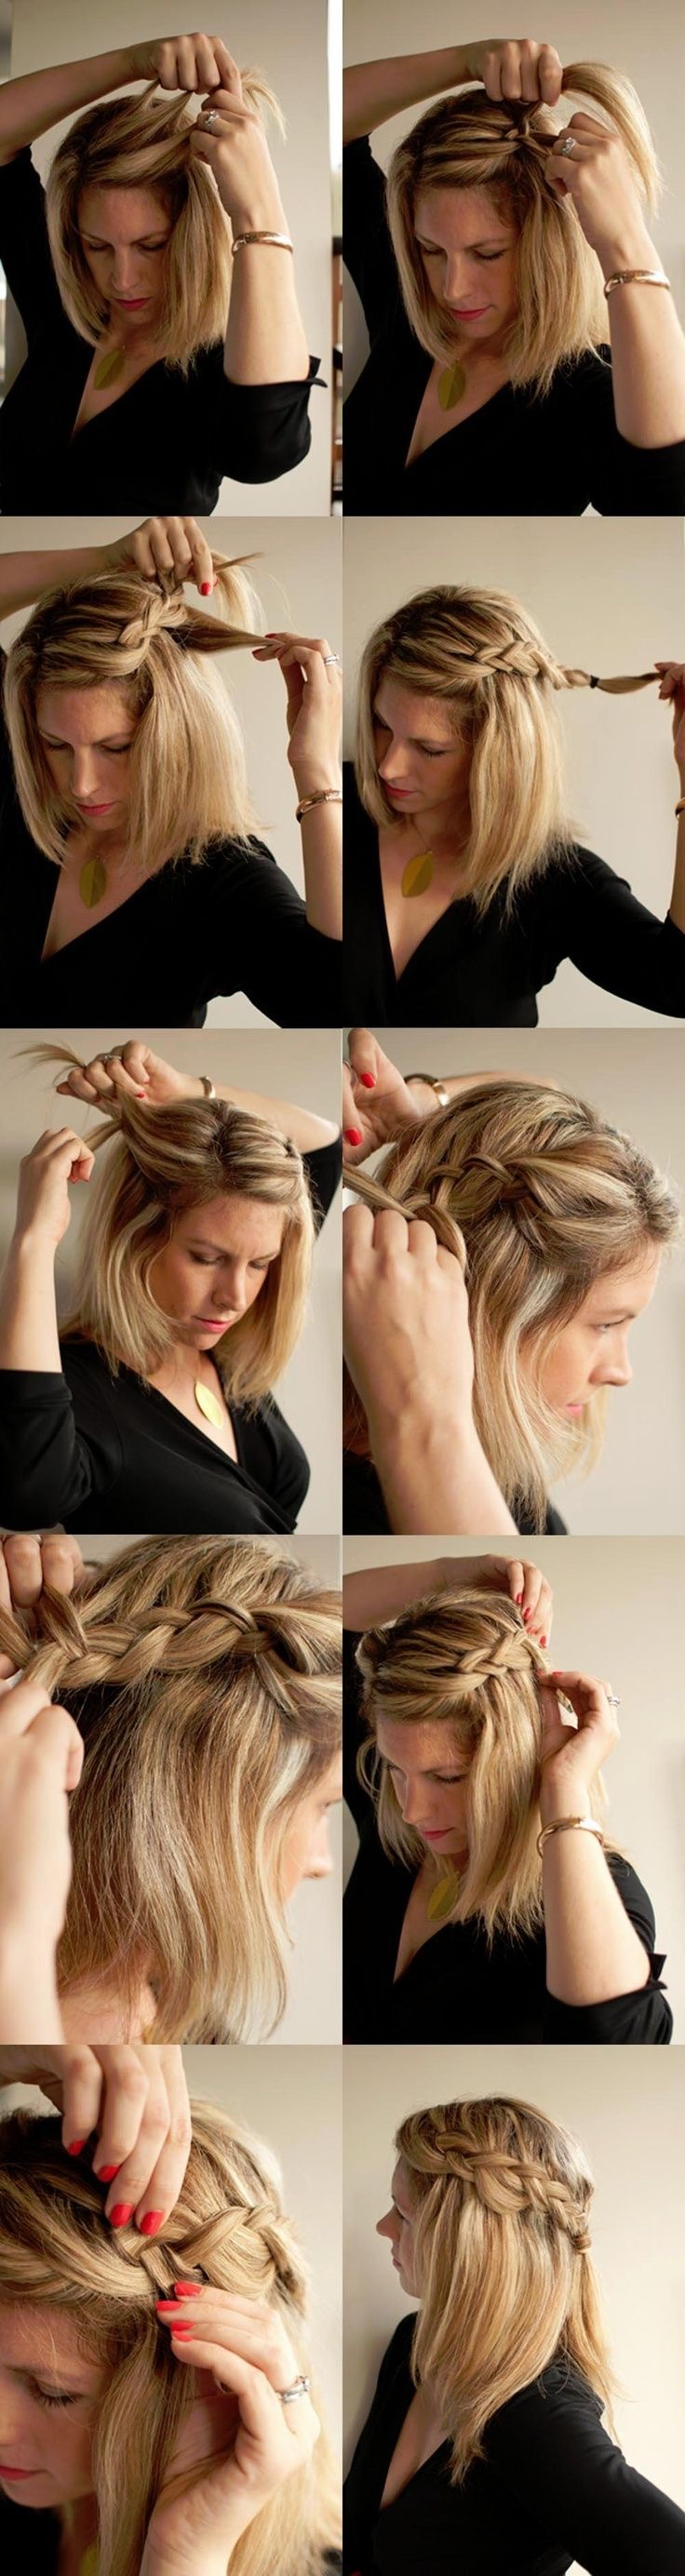 Pin by sil ortiz on hairstyle pinterest hair makeup hair style